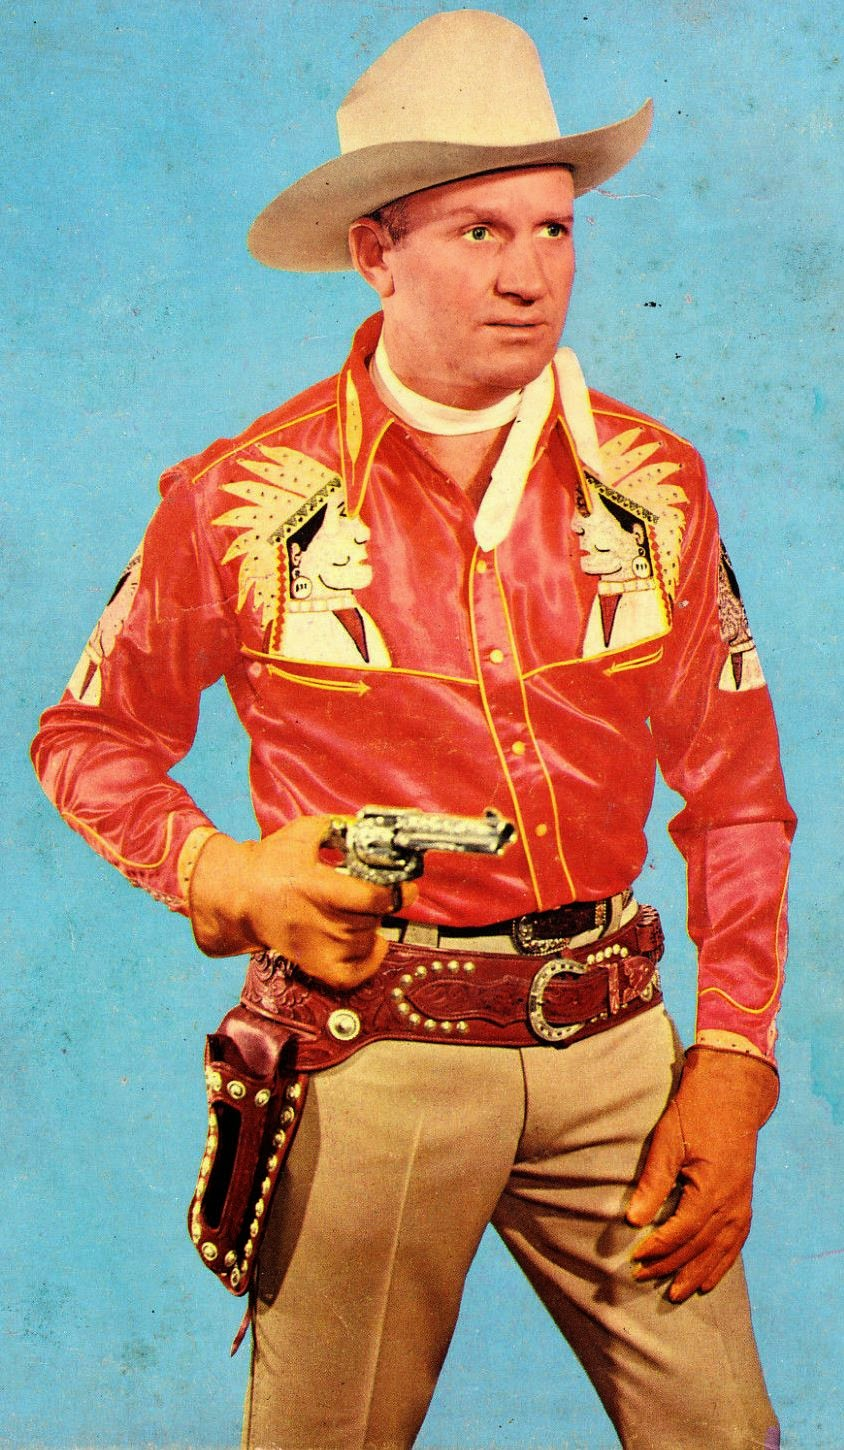 gene autry mature dating site The gene autry western heritage museum scheduled autry museum acquires teddy roosevelt collection by g with a history of reliable reporting dating back.